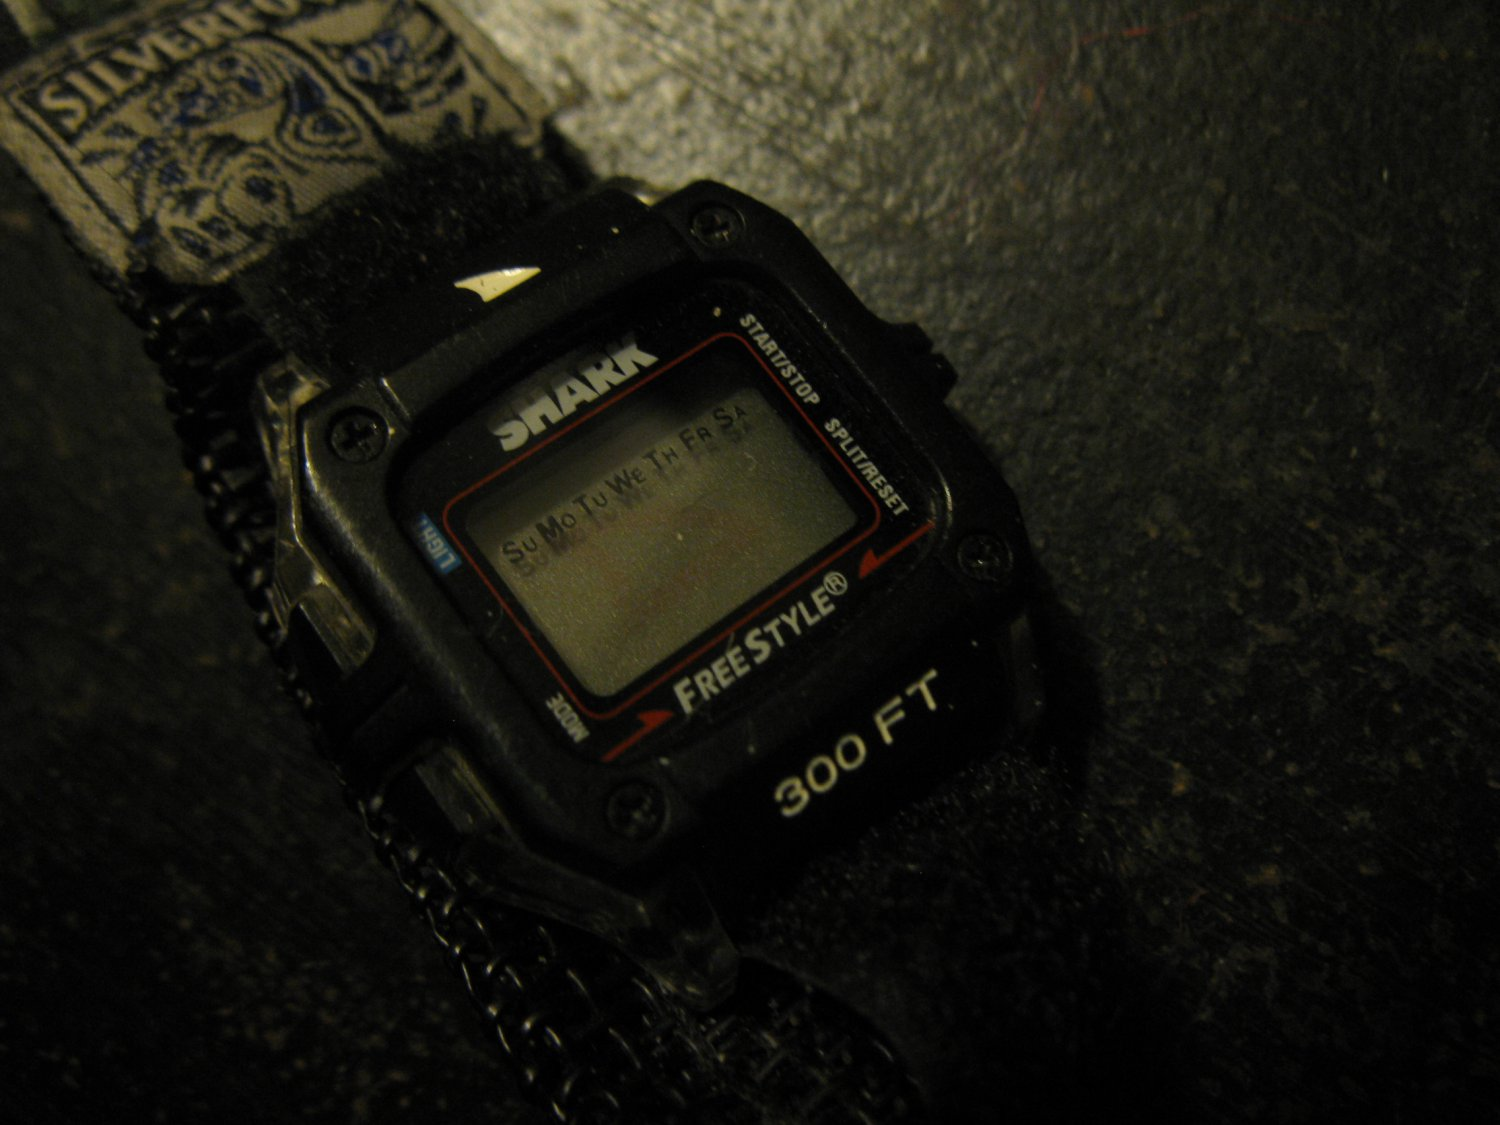 AQT2 Teen Digital Dive Watch: Chronograph, Water Resistant 30M, 1/100s Stopwatch